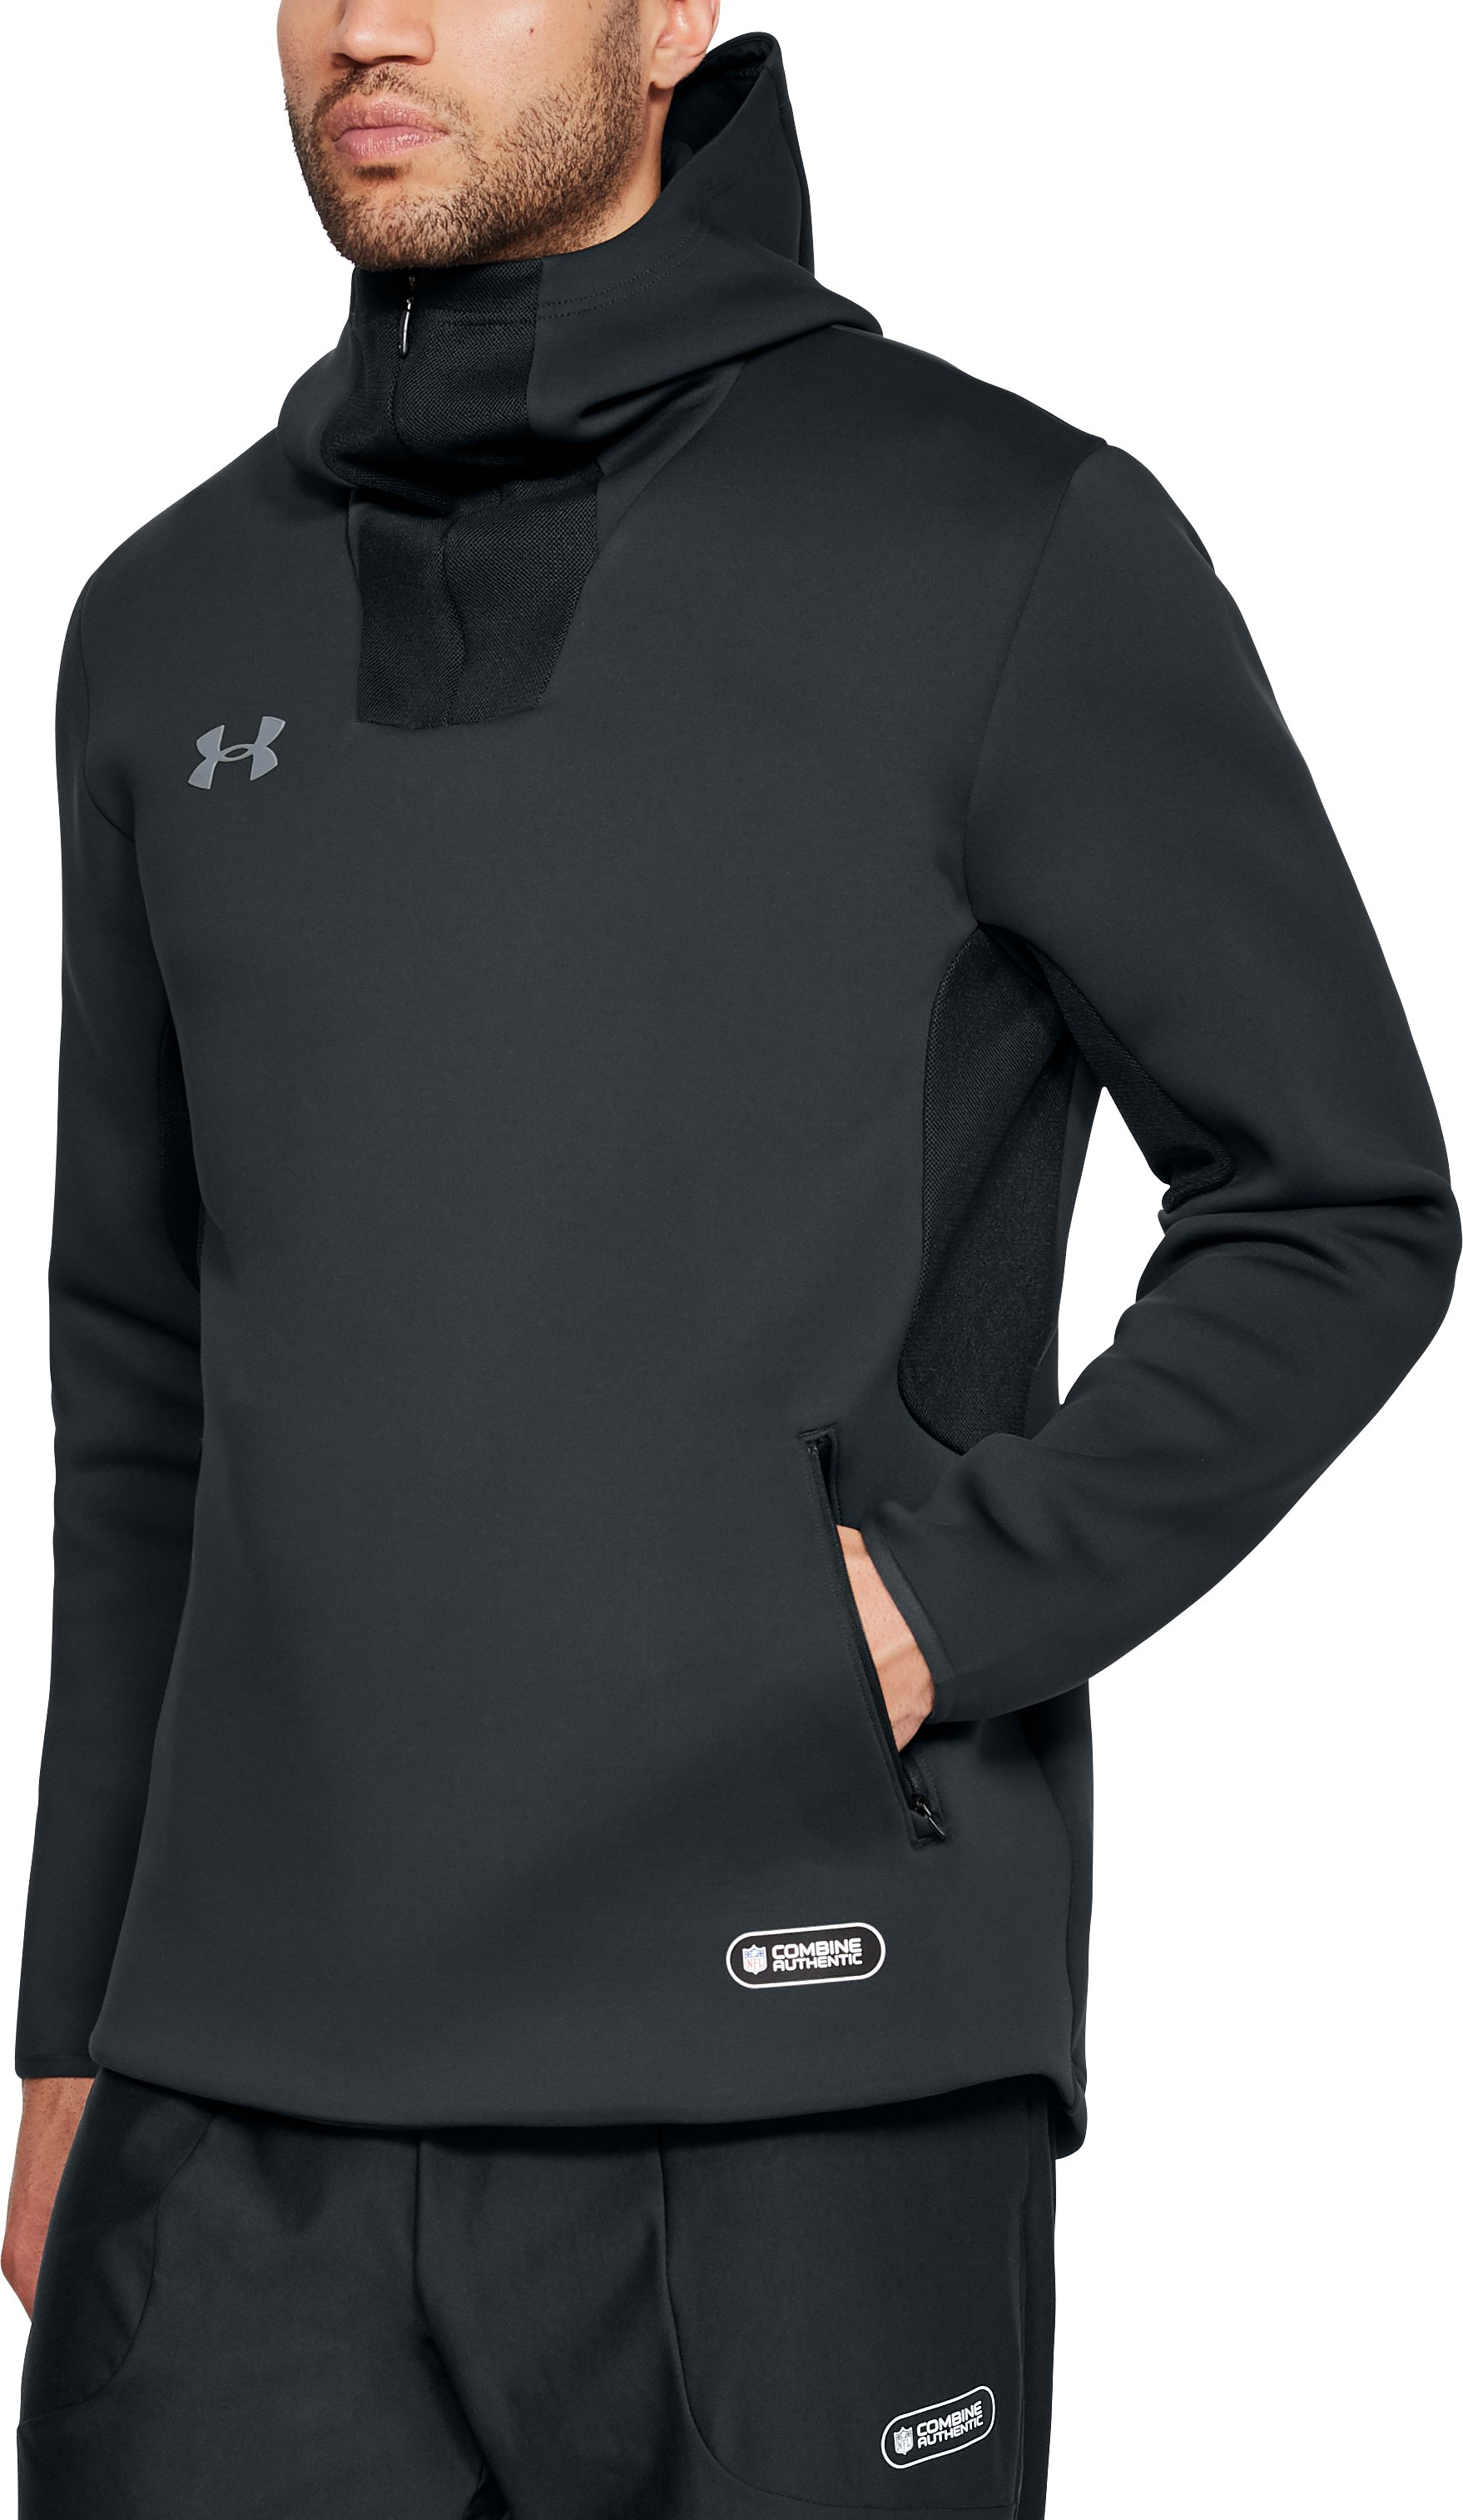 Men's NFL Combine Authentic Event Hoodie, ANTHRACITE,